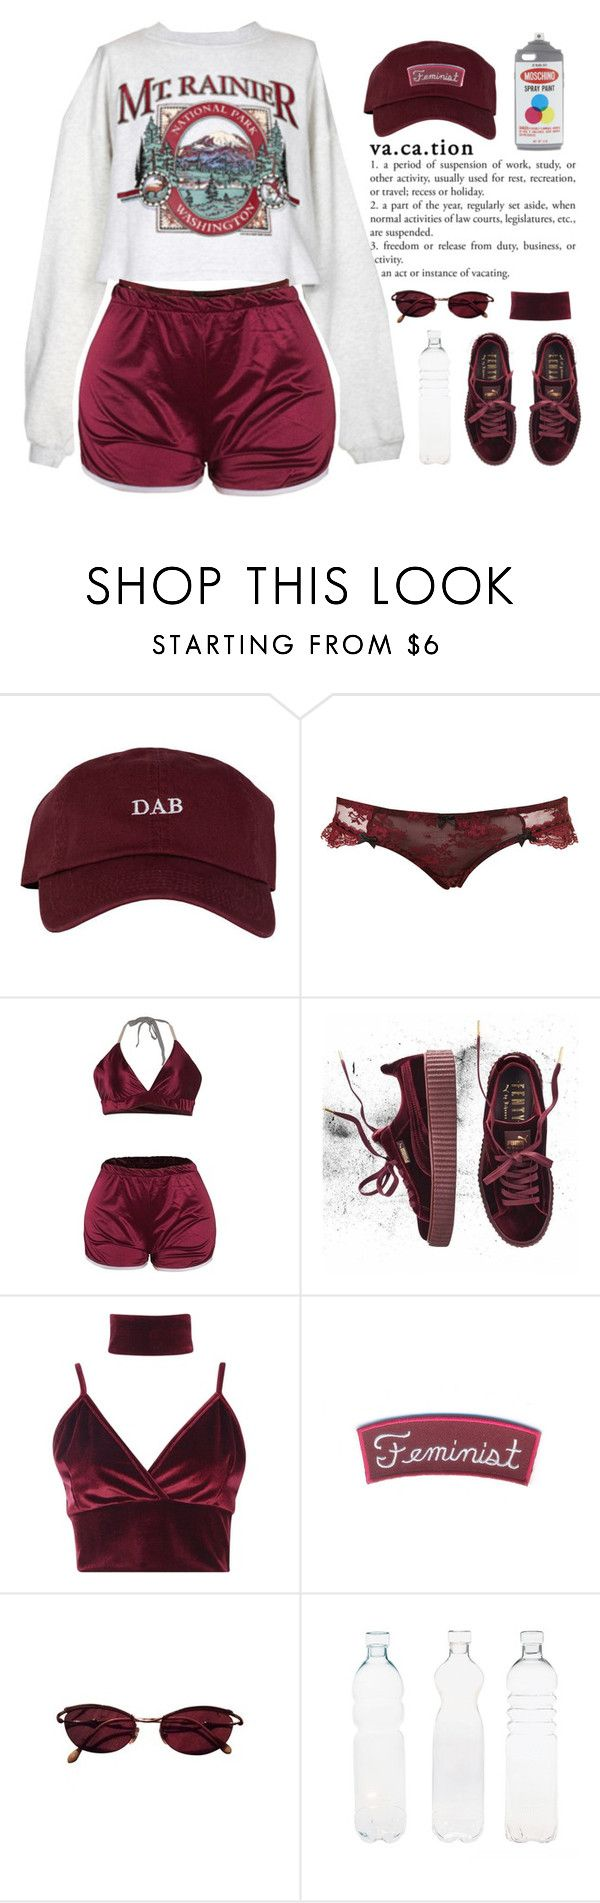 COMFY FEMINIST by queenbrittani ❤ liked on Polyvore featuring The High Rise, Puma, Boohoo, Jean-Paul Gaultier, Seletti and Moschino